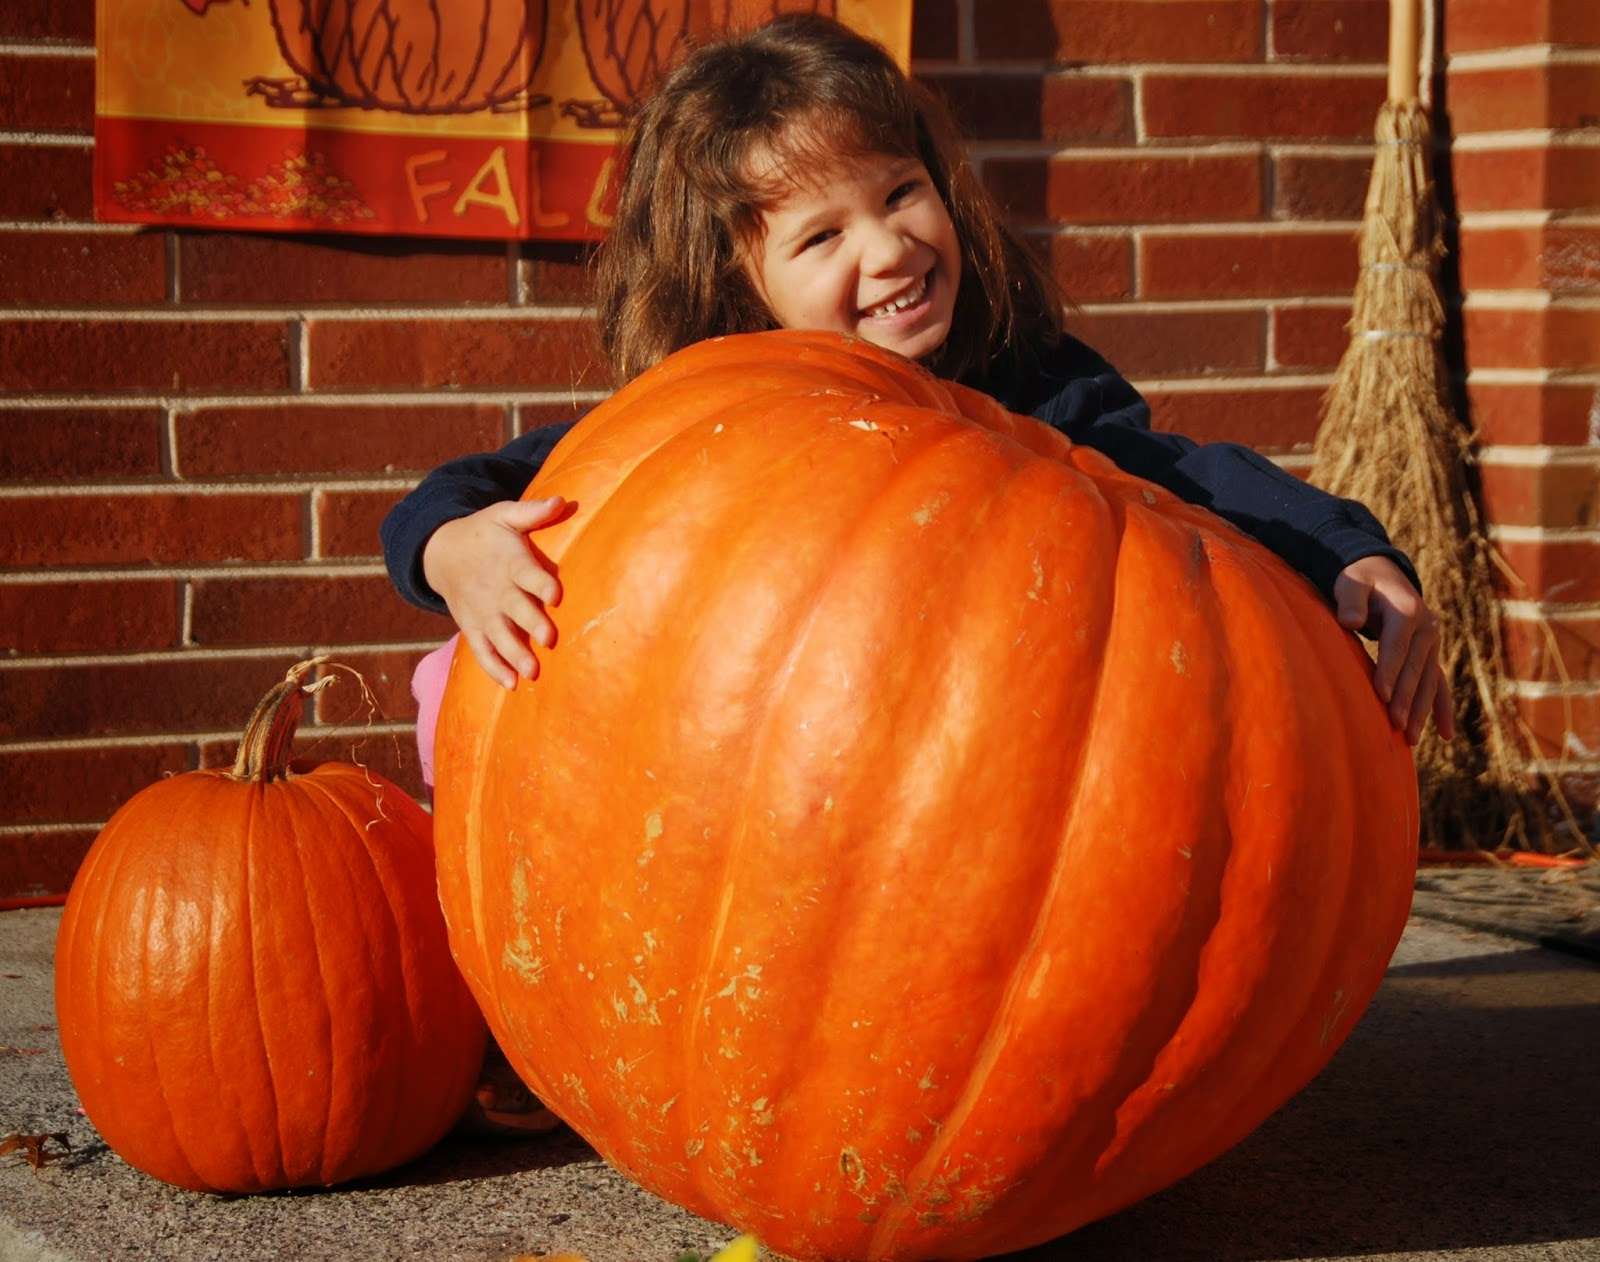 Girl posing with a large pumpkin for Halloween